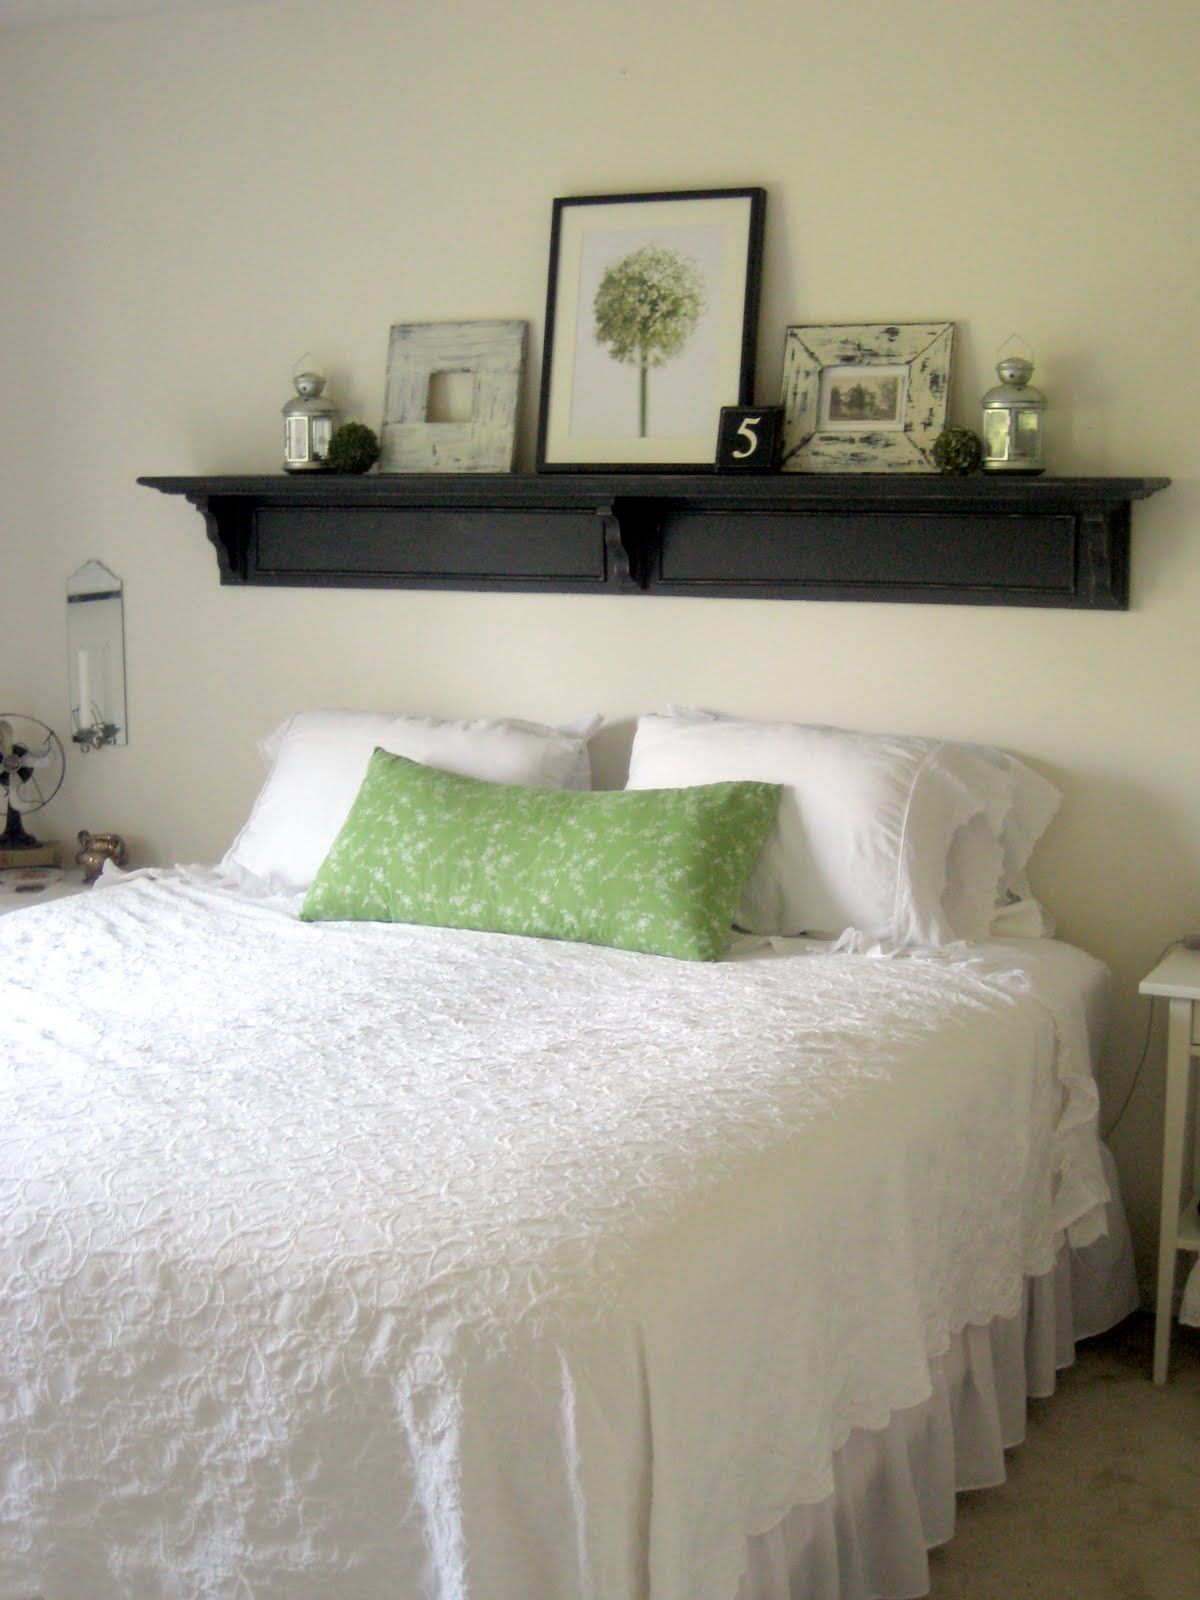 Headboard Shelf Reveal Headboard With Shelves Home Decor Bedroom Diy Home Decor Bedroom